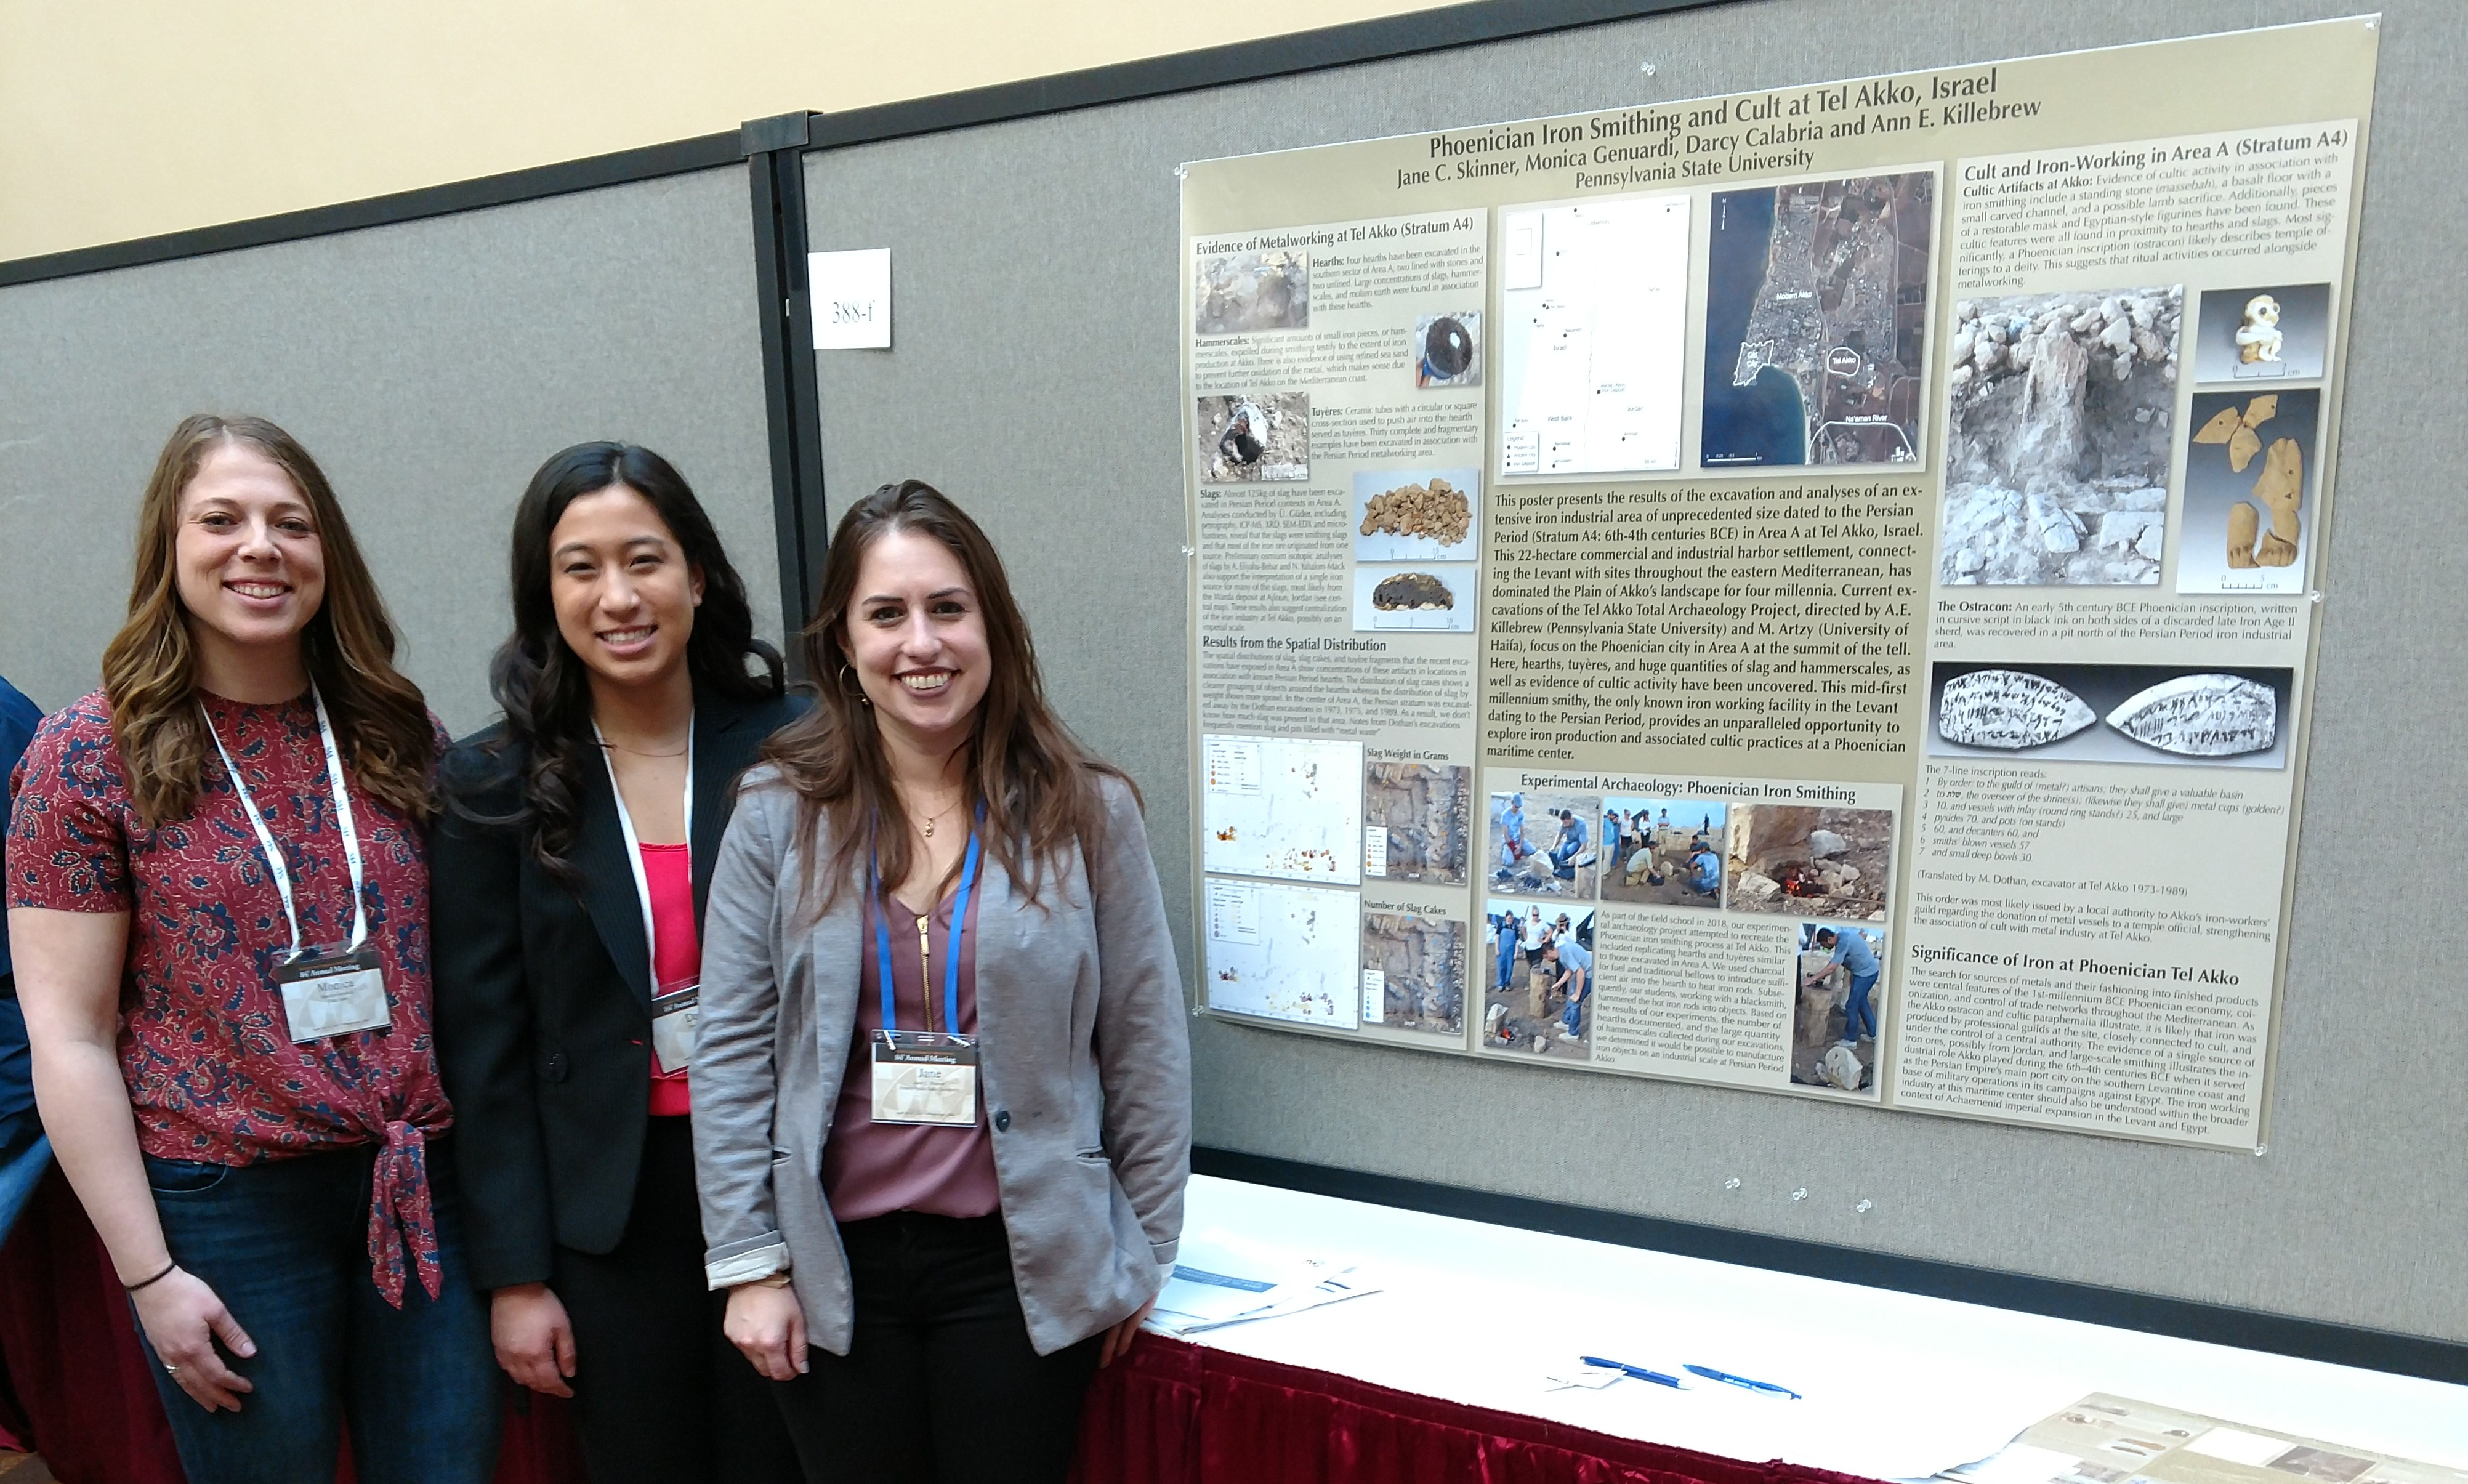 Monica Genuardi, Darcy Calabria, Jane Skinner for TEL AKKO at the American Society for American Archaeology conference